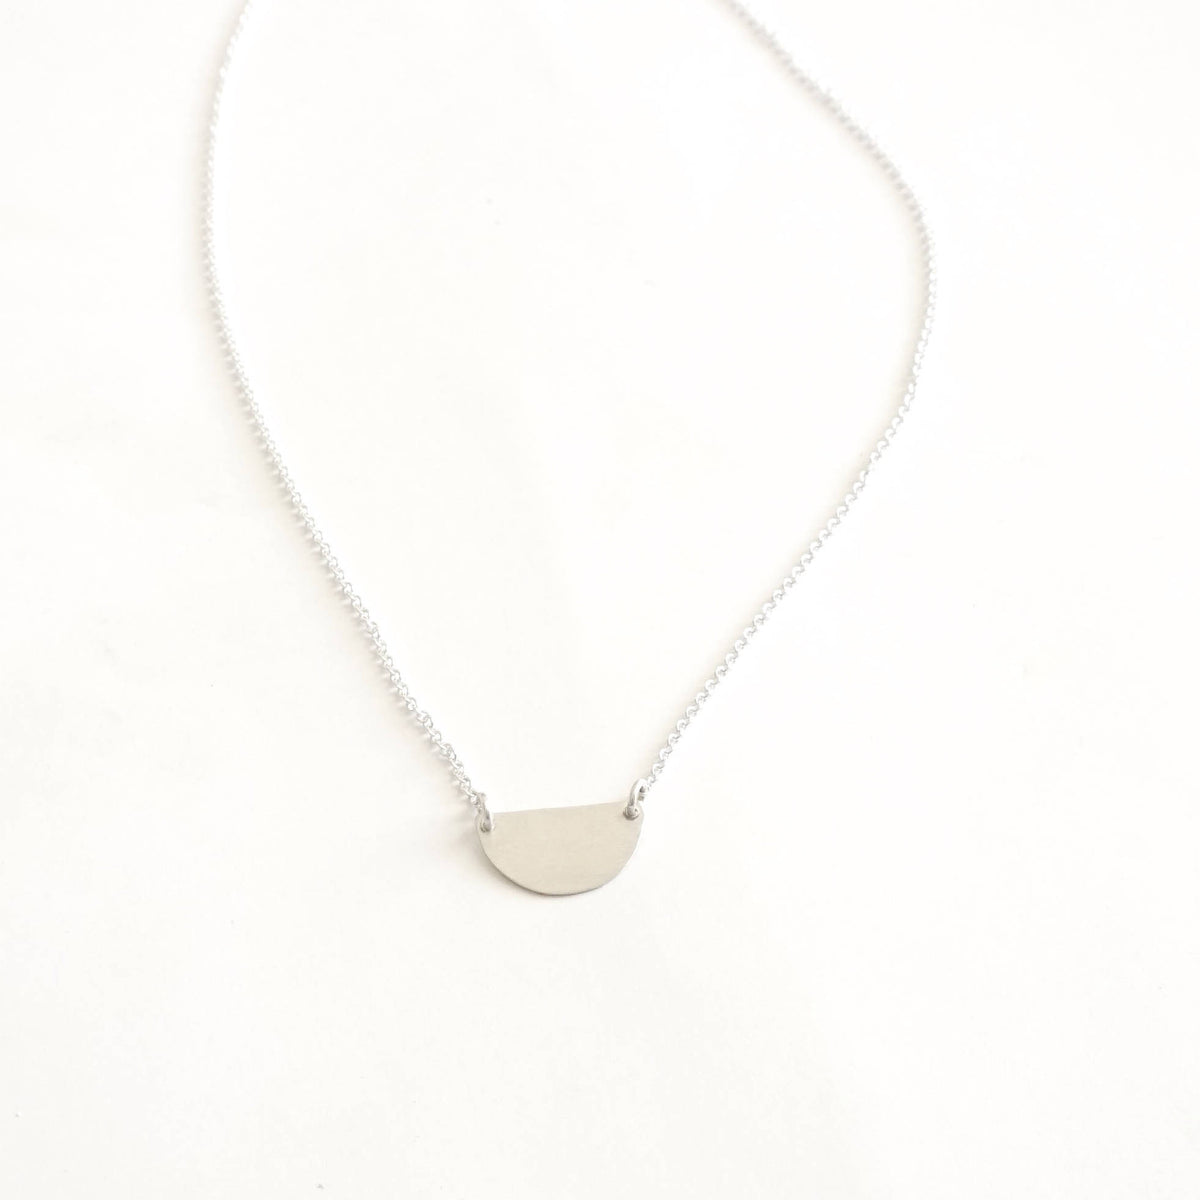 Timeless Simplicity In This Hand-Made, Half Circle Charm Necklace - 0282 - Virginia Wynne Designs